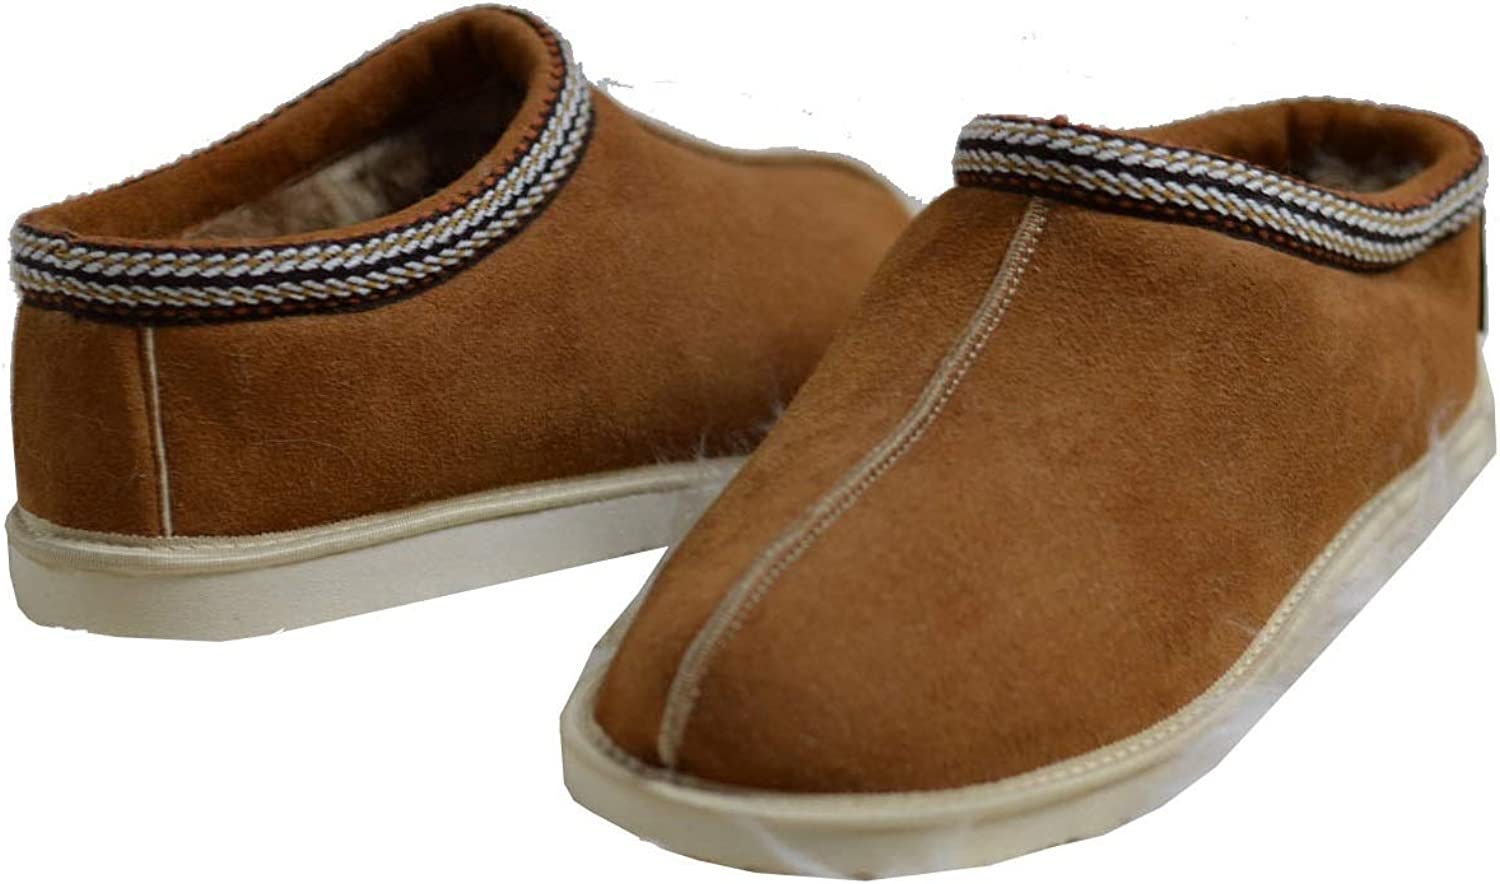 Yeti & Sons New Hand Crafted Luxury Women's Unisex Sheepskin Ankle Boot Slippers